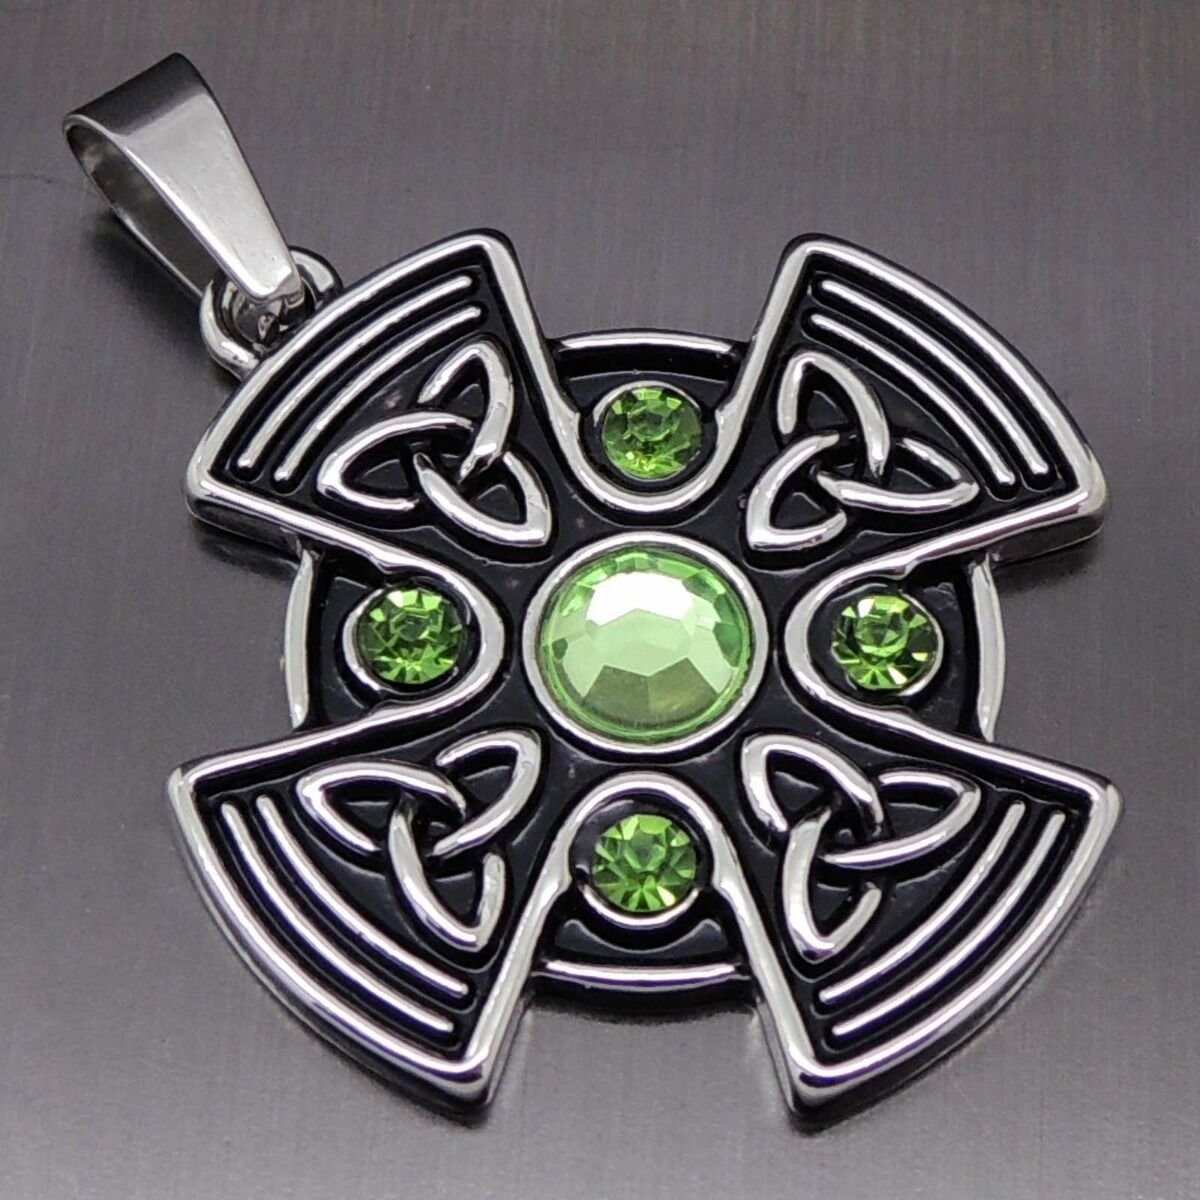 Celtic green sun cross pewter pendant 20 necklace pp 295 g ebay picture 1 of 3 aloadofball Choice Image